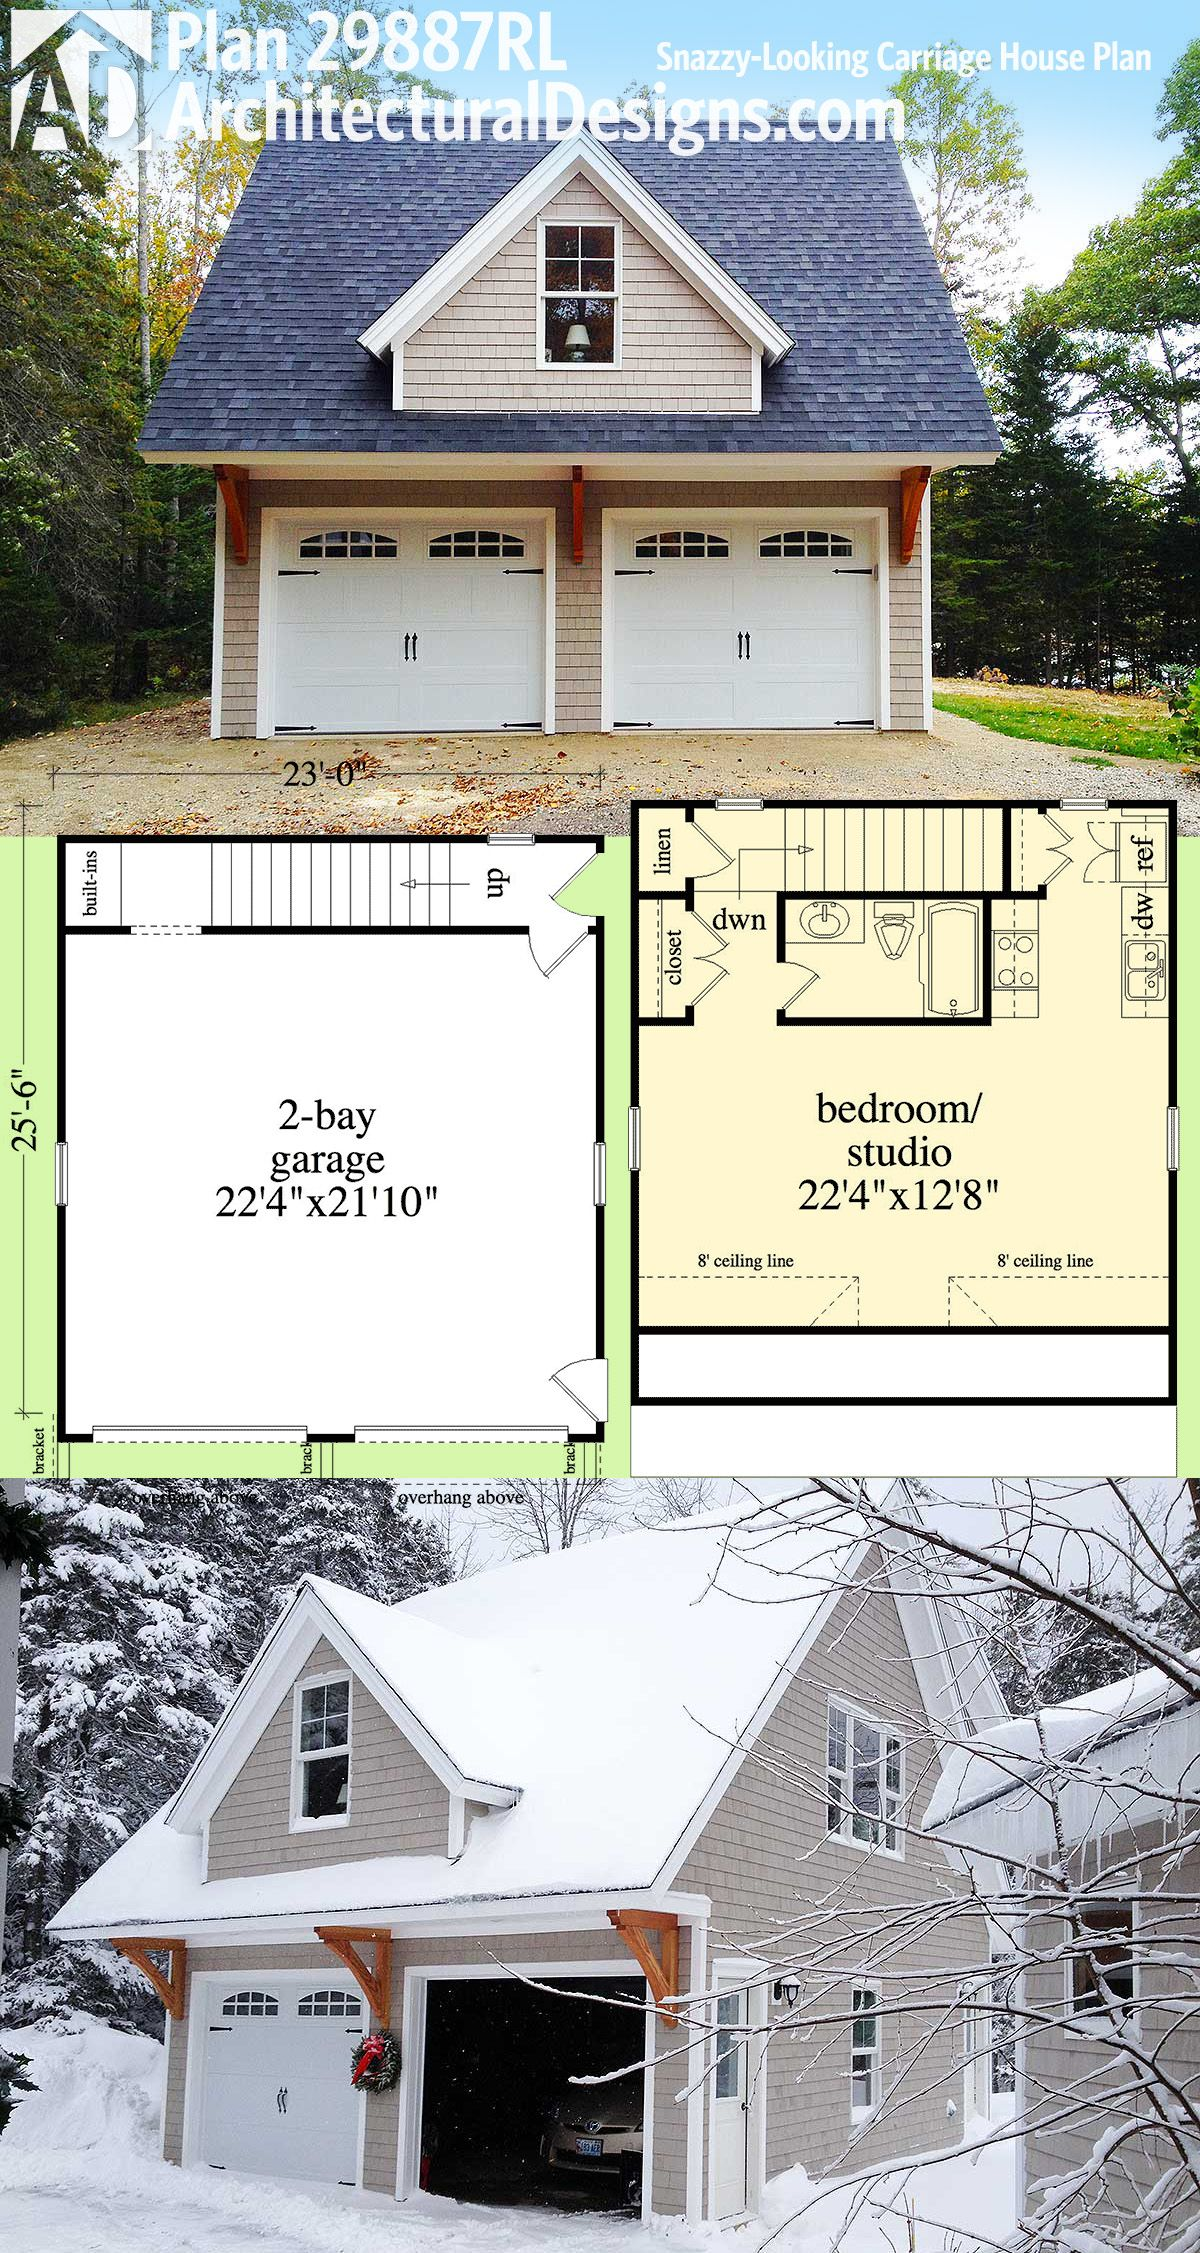 Plan 29887rl snazzy looking carriage house plan for Small house plans with 2 car garage